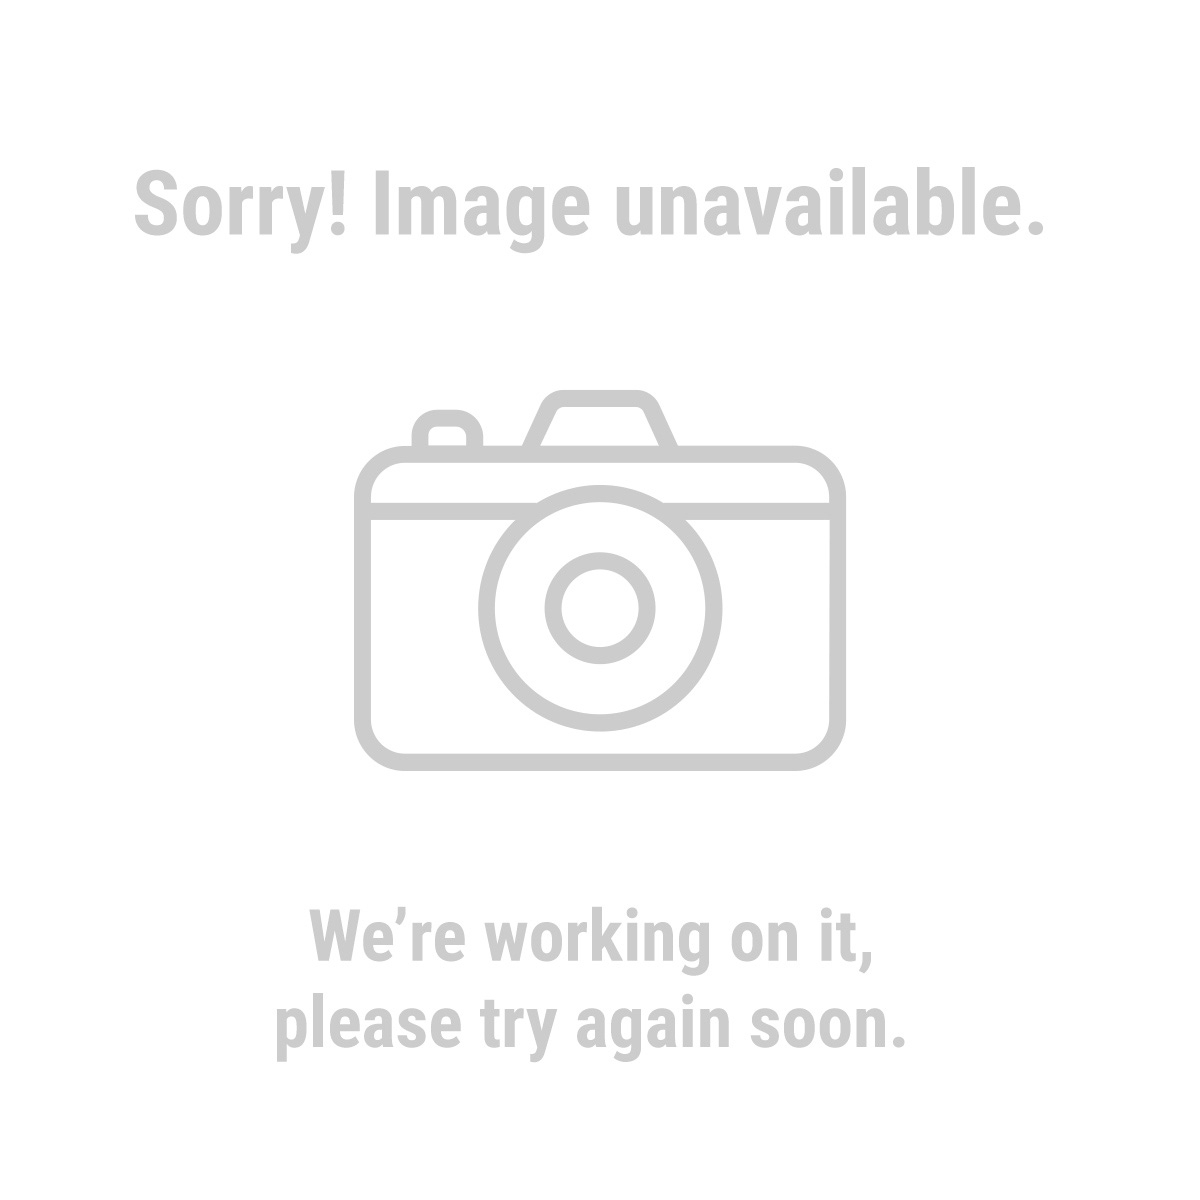 Haul-Master 62388 10 in. Pneumatic Tire  with White Hub